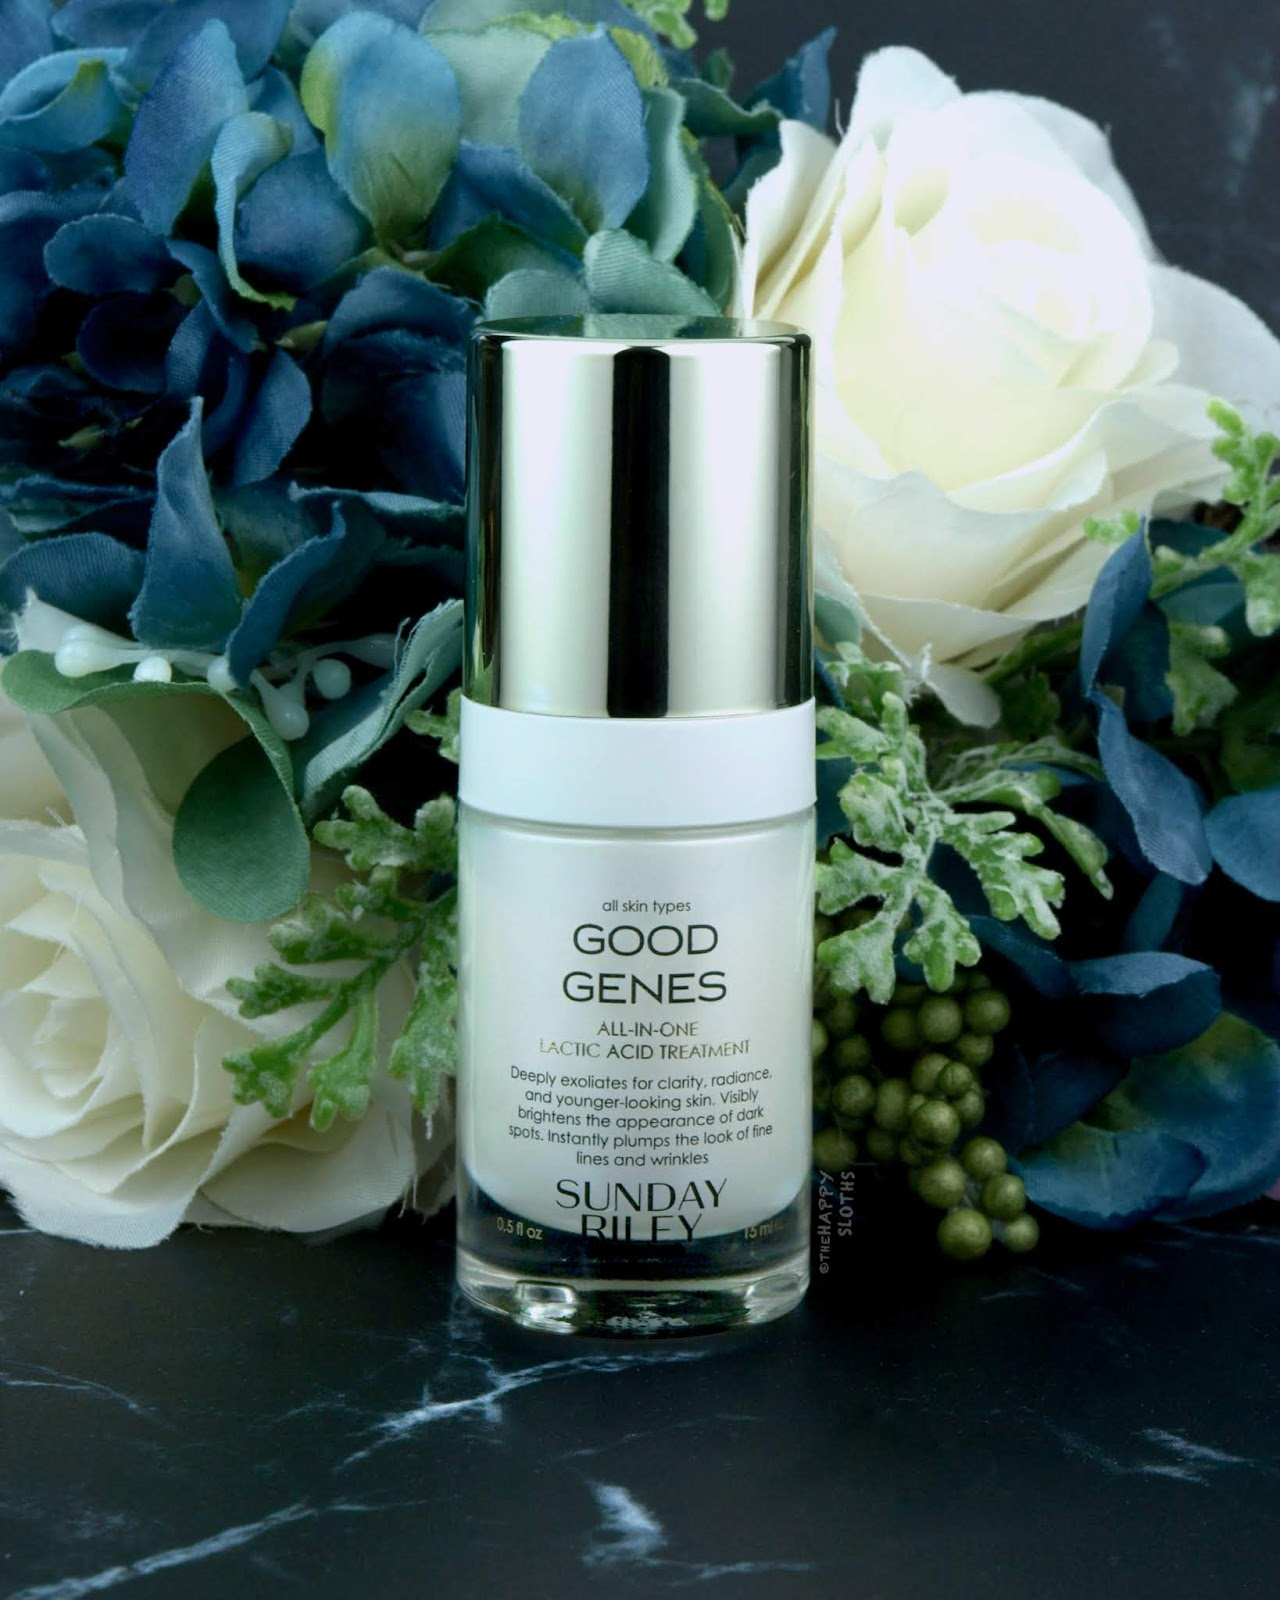 Sunday Riley | Good Genes All-In-One Lactic Acid Treatment: Review